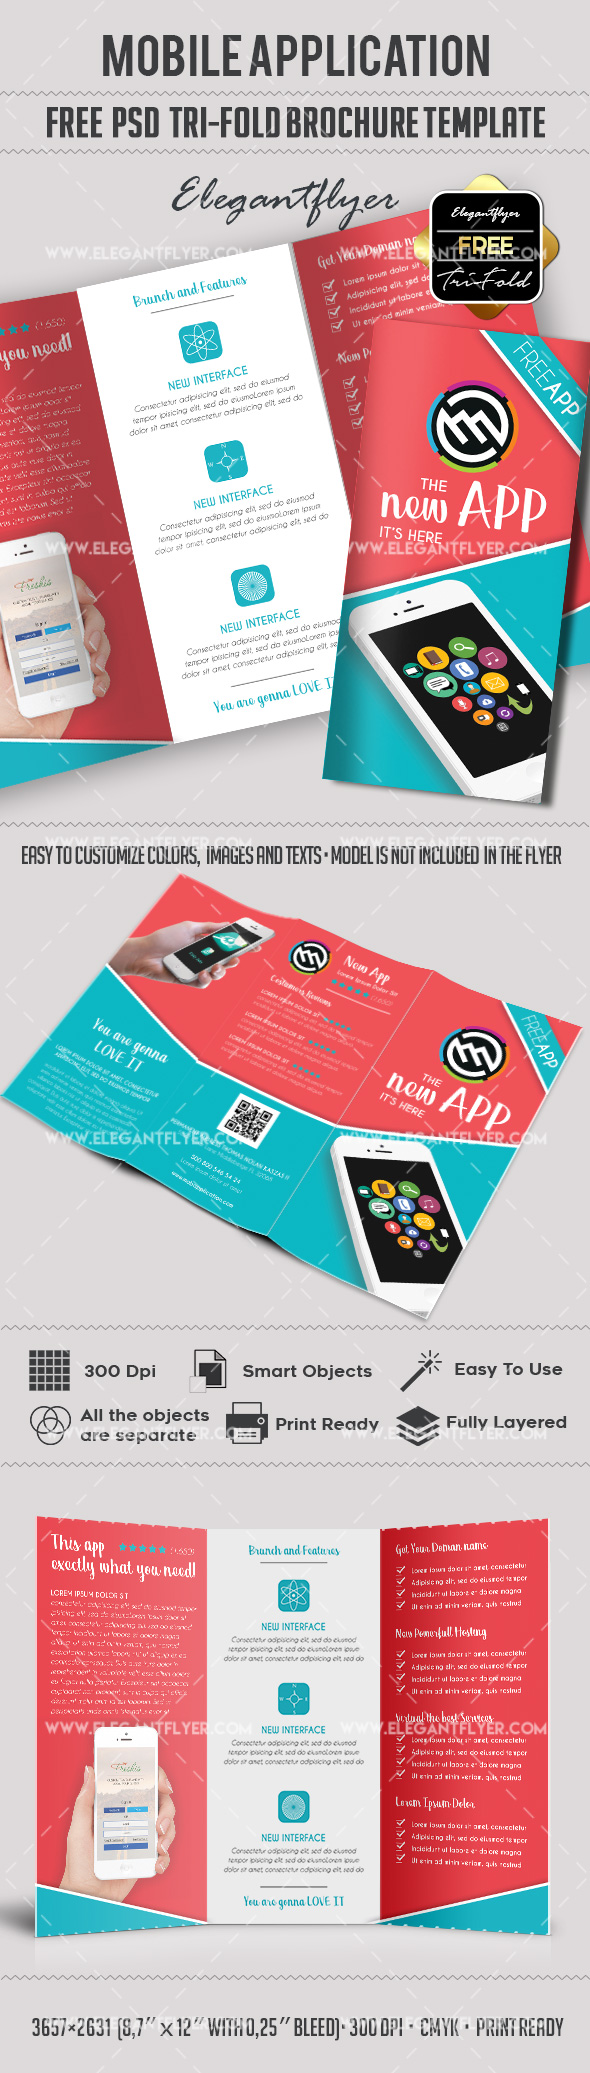 Free mobile application tri fold psd brochure by for Tri fold brochure template psd